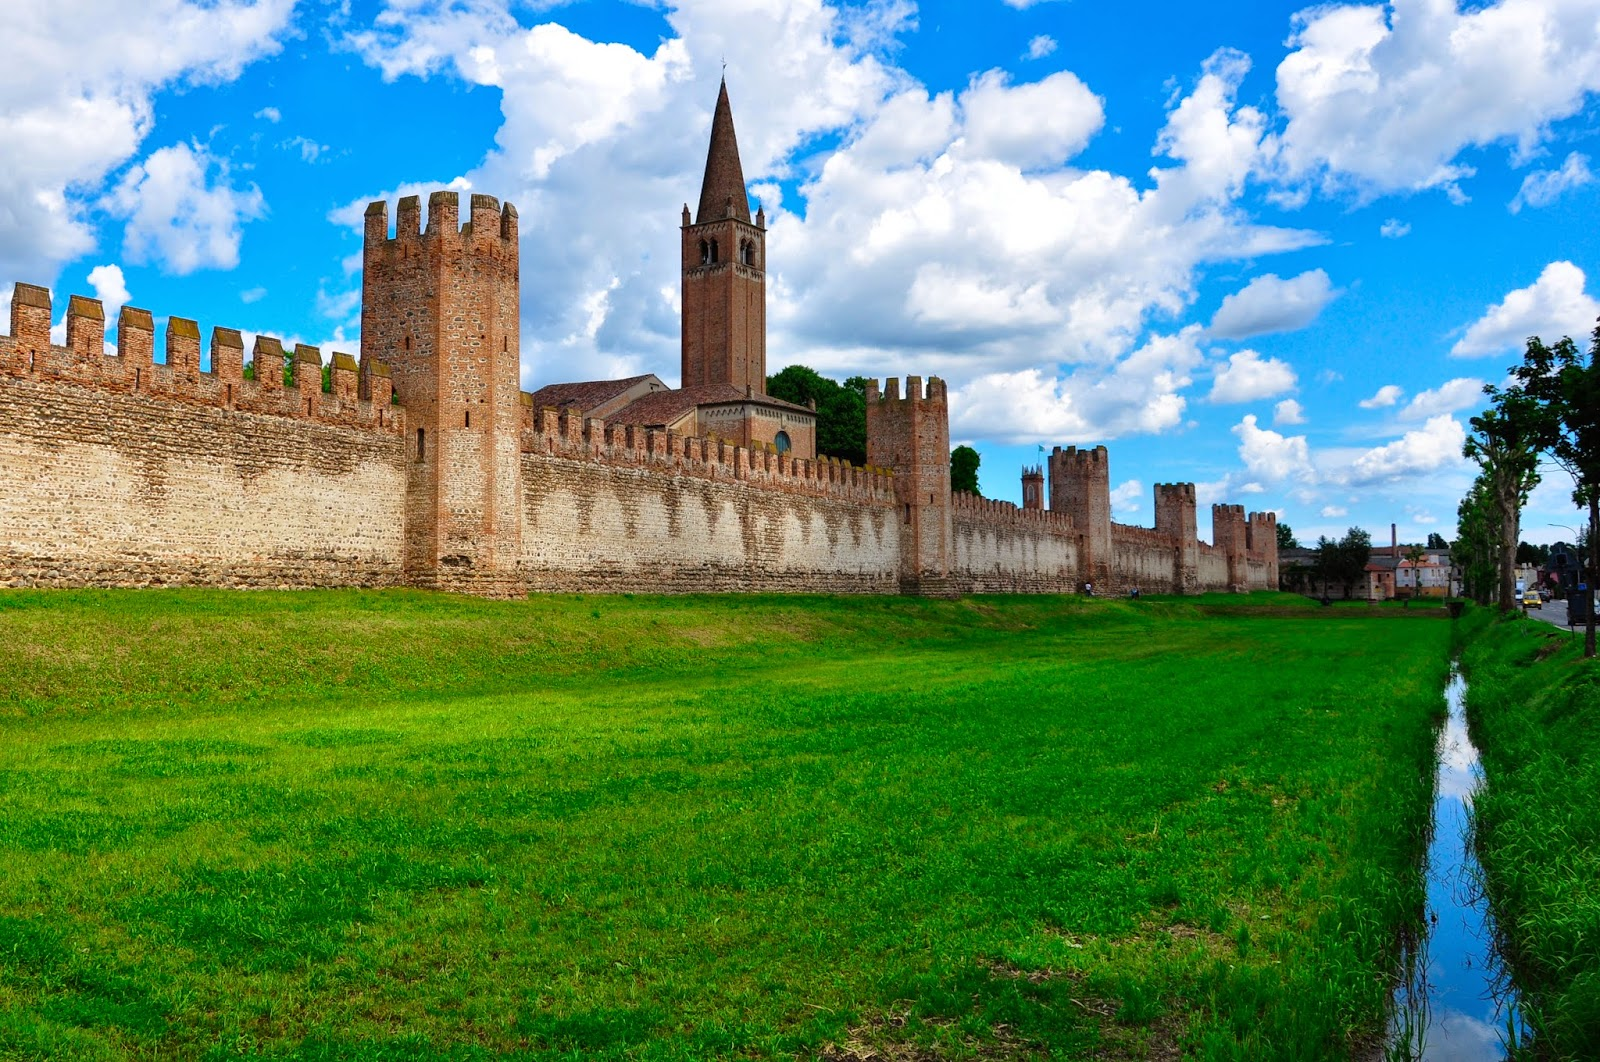 The medieval defensive wall of Montagnana, Veneto, Italy - www.rossiwrites.com